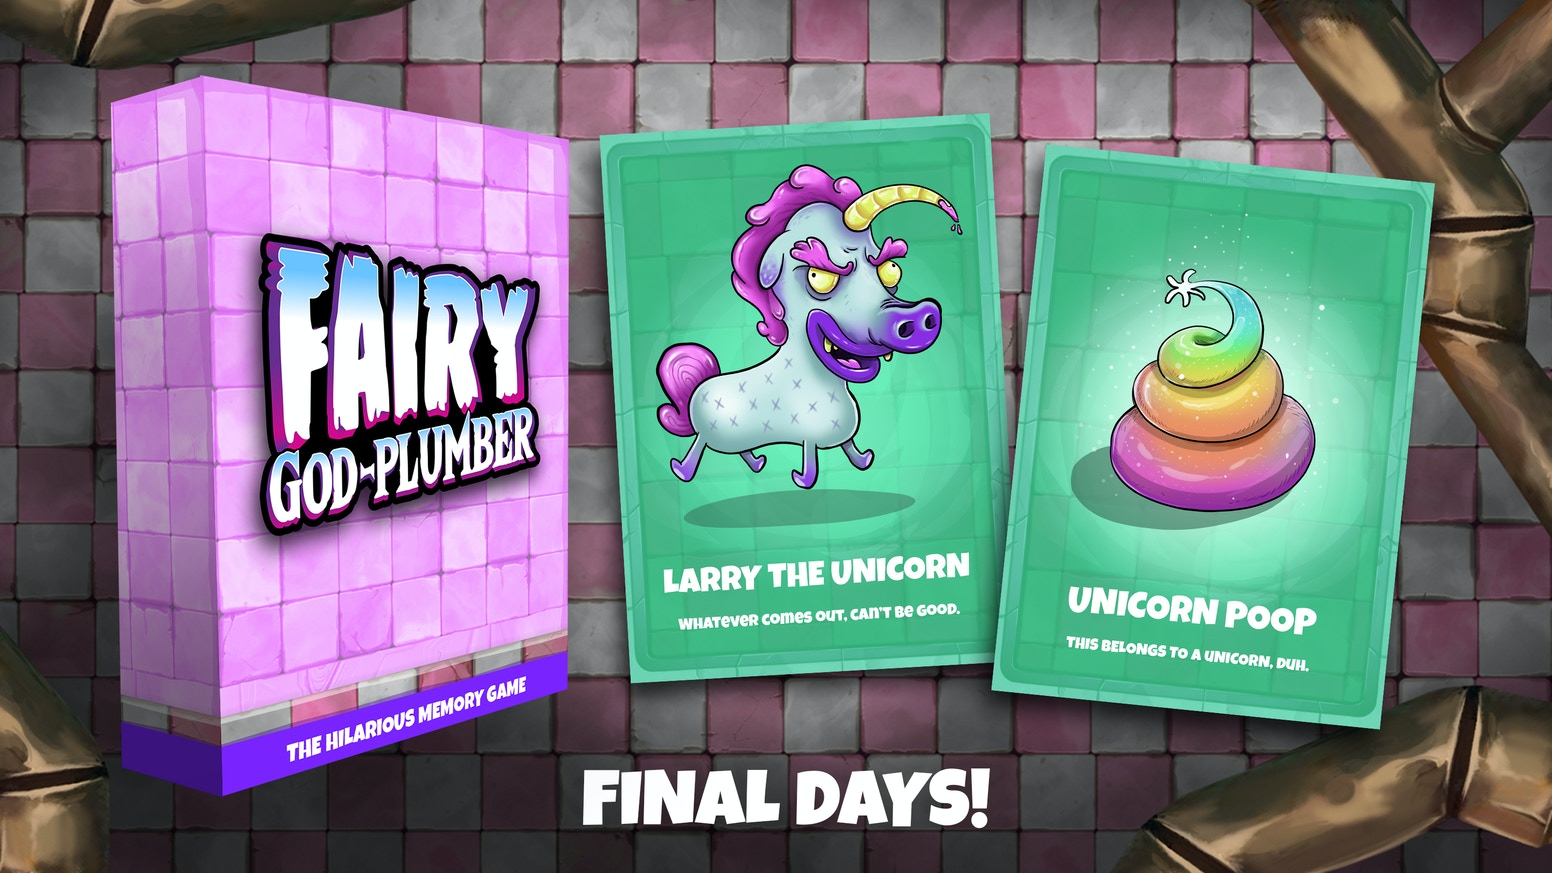 Fairy God Plumber 💩 Match The Monster Poop To Win by Sam Milham